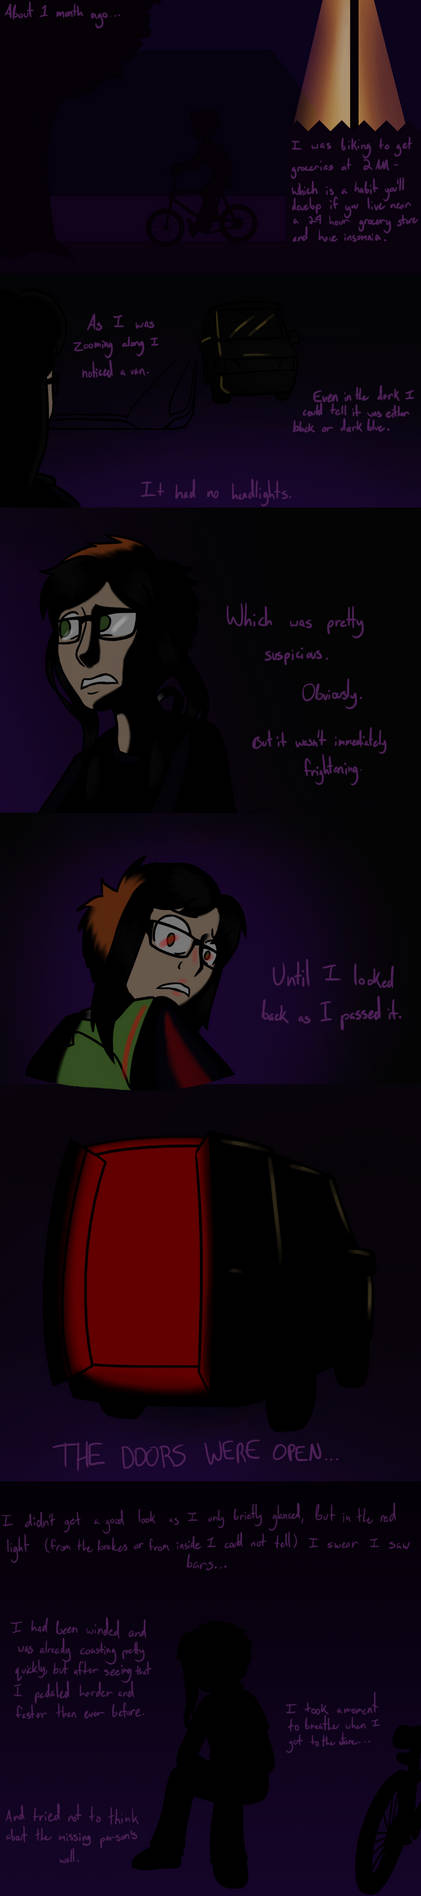 Diary Comic: Probably Kidnappers by InsanelyADD on DeviantArt